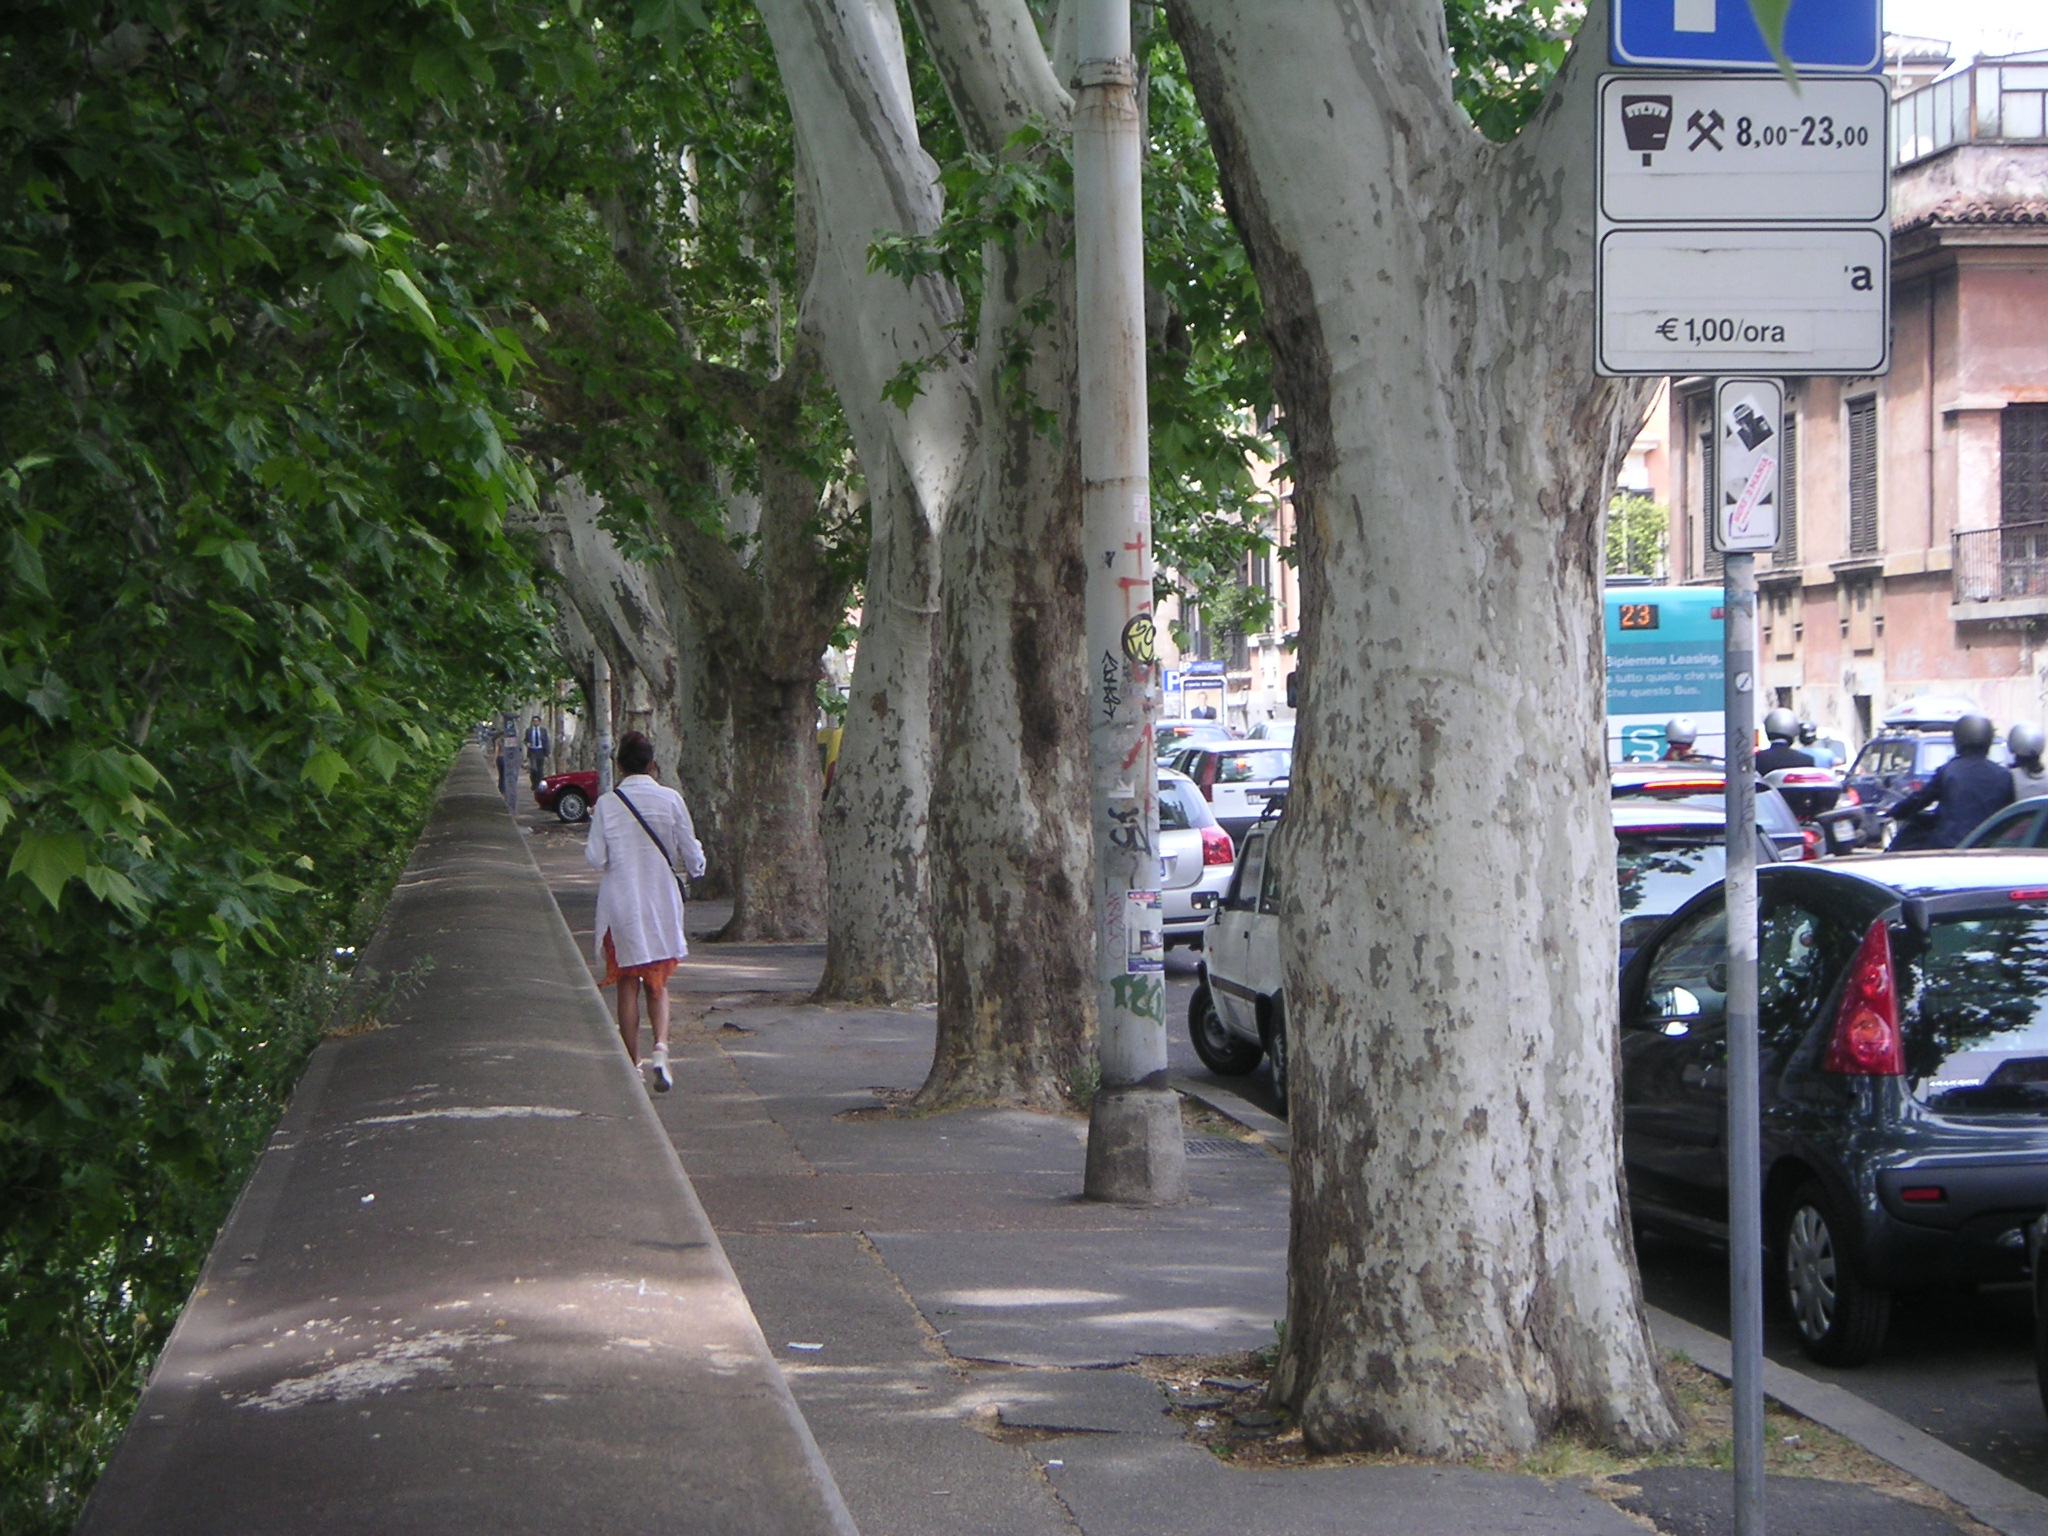 woman walking on street with trees